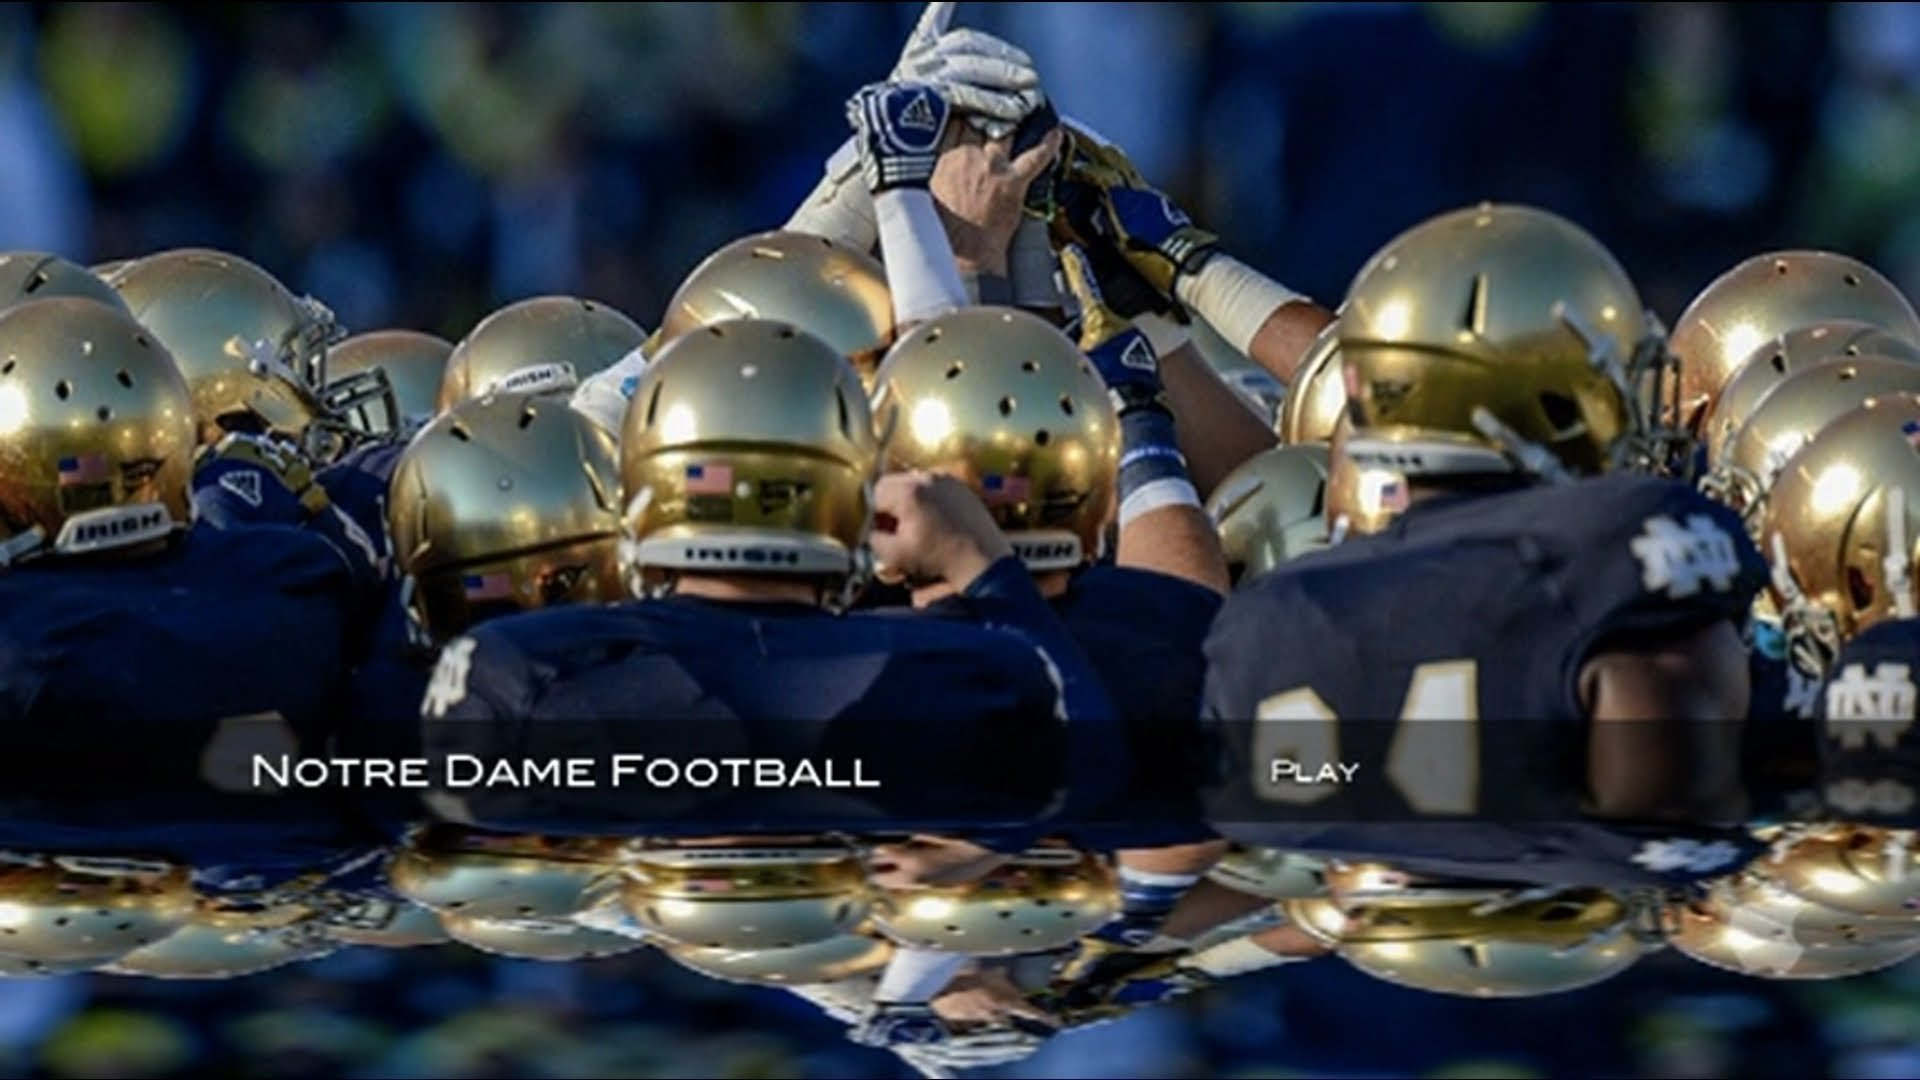 NOTRE DAME Fighting Irish college football wallpaper background 1920x1080